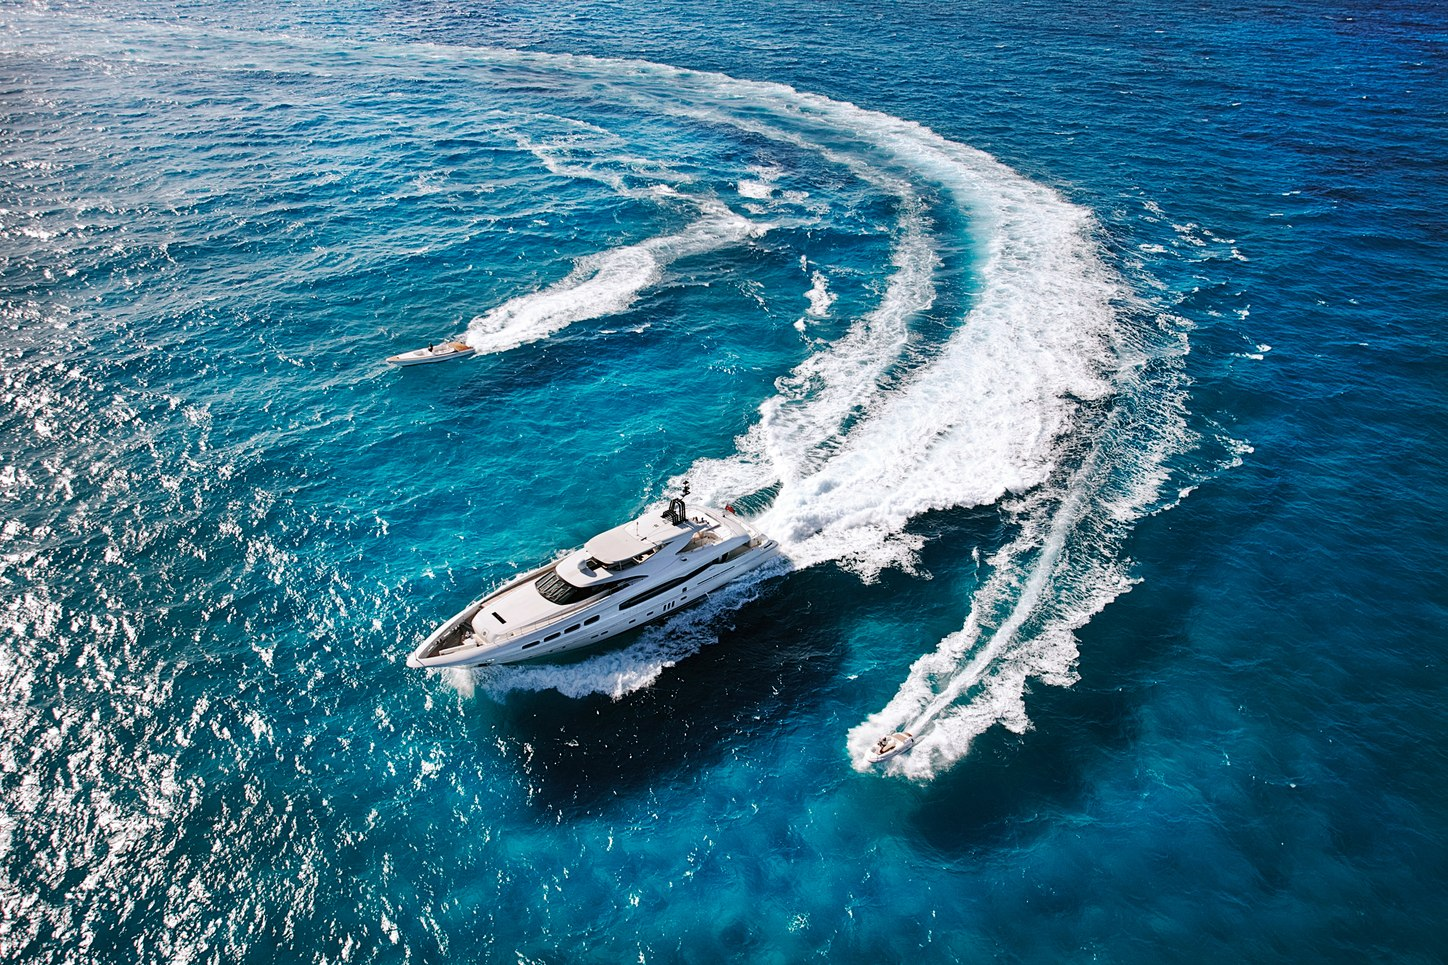 charter yacht Infinity Pacific takes to the Australian waters alongside two tenders